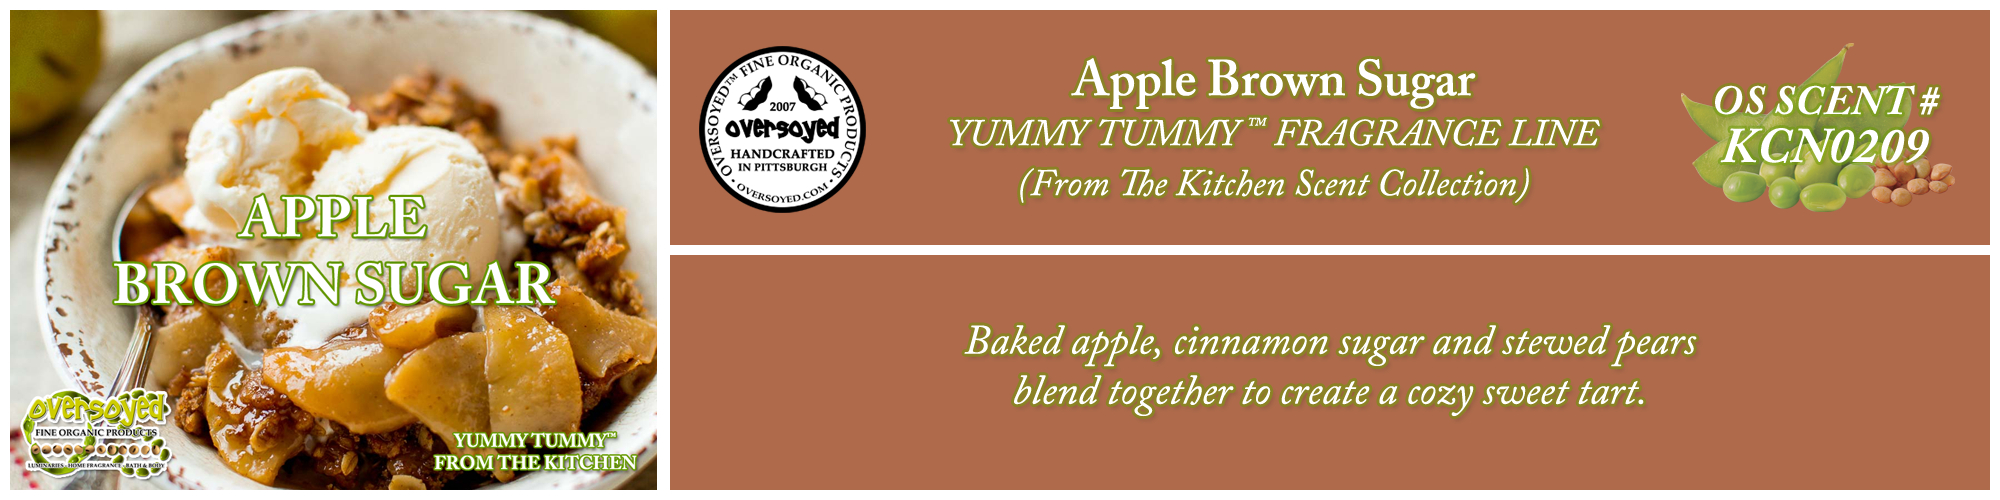 Apple Brown Sugar Handcrafted Products Collection